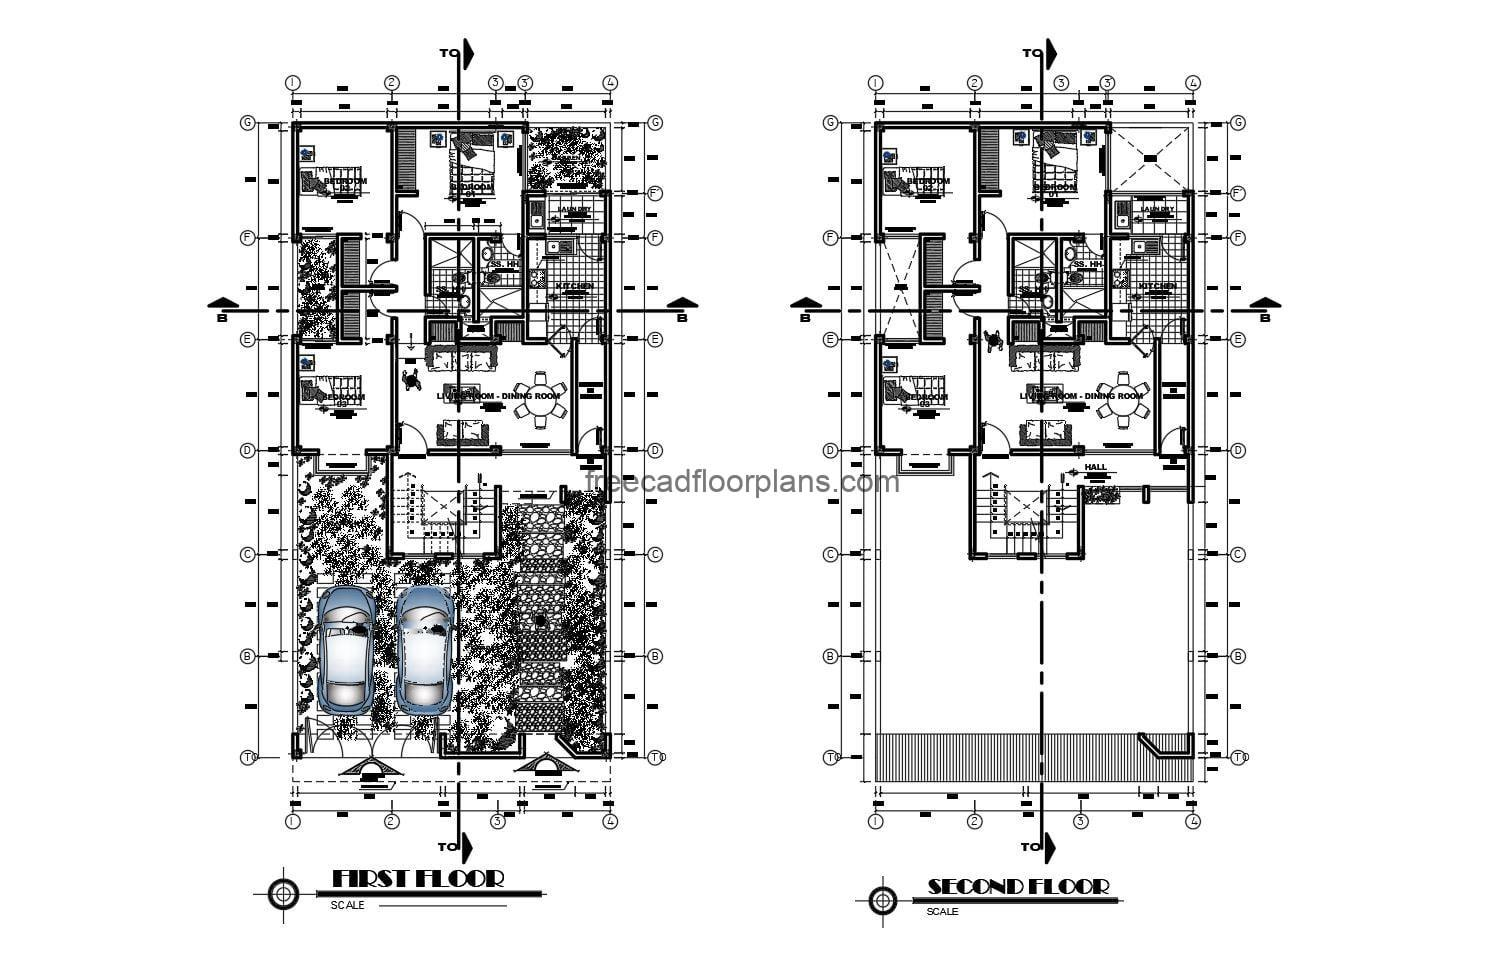 Furnished and sized architectural plans for free download in autocad format.